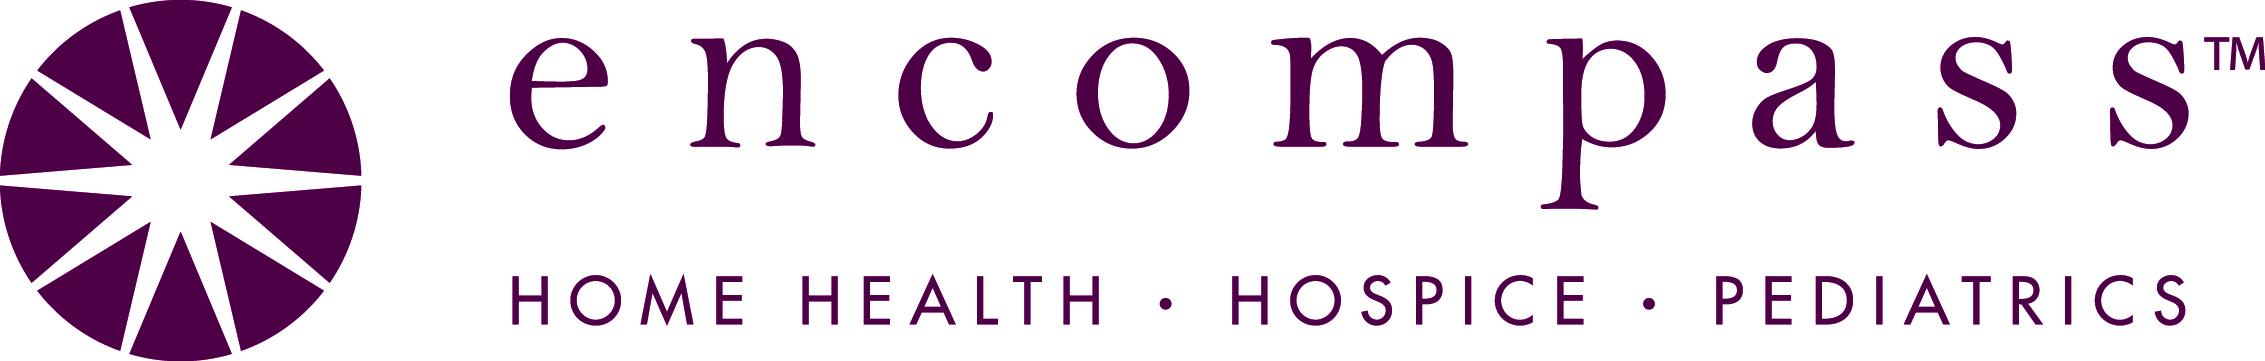 Encompass Home Health And Hospice Logo